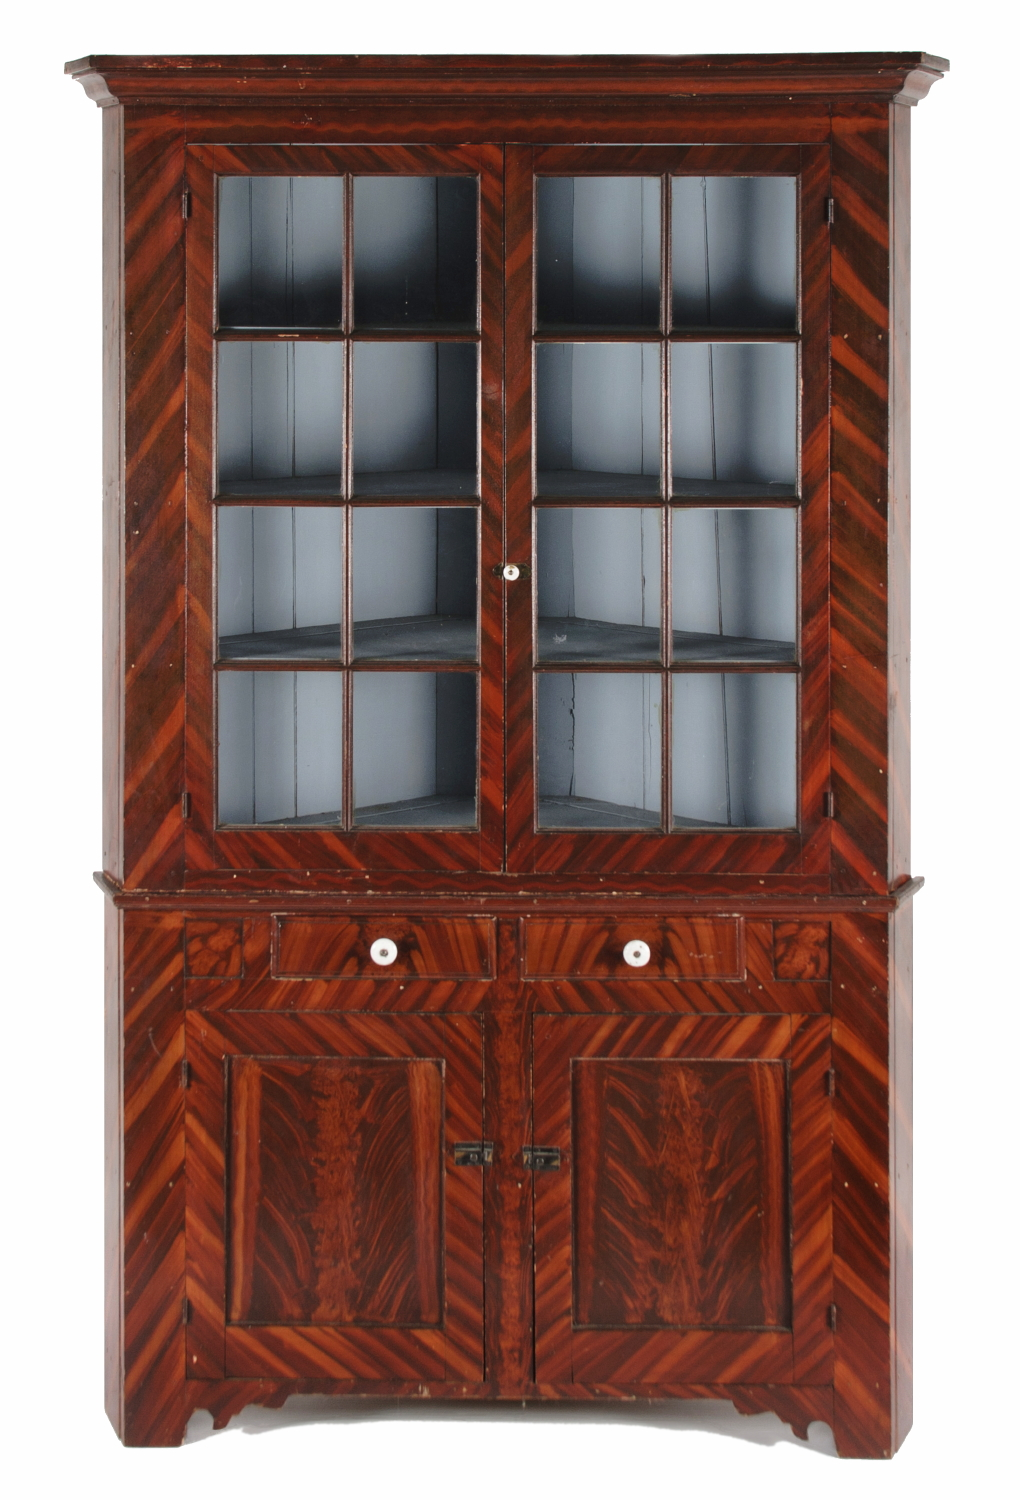 PAINT-DECORATED CORNER CUPBOARD, ATTRIBUTED TO JOHN RUPP, YORK COUNTY,  PENNSYLVANIA, - Jeff Bridgman Antique Flags And Painted Furniture - PAINT-DECORATED